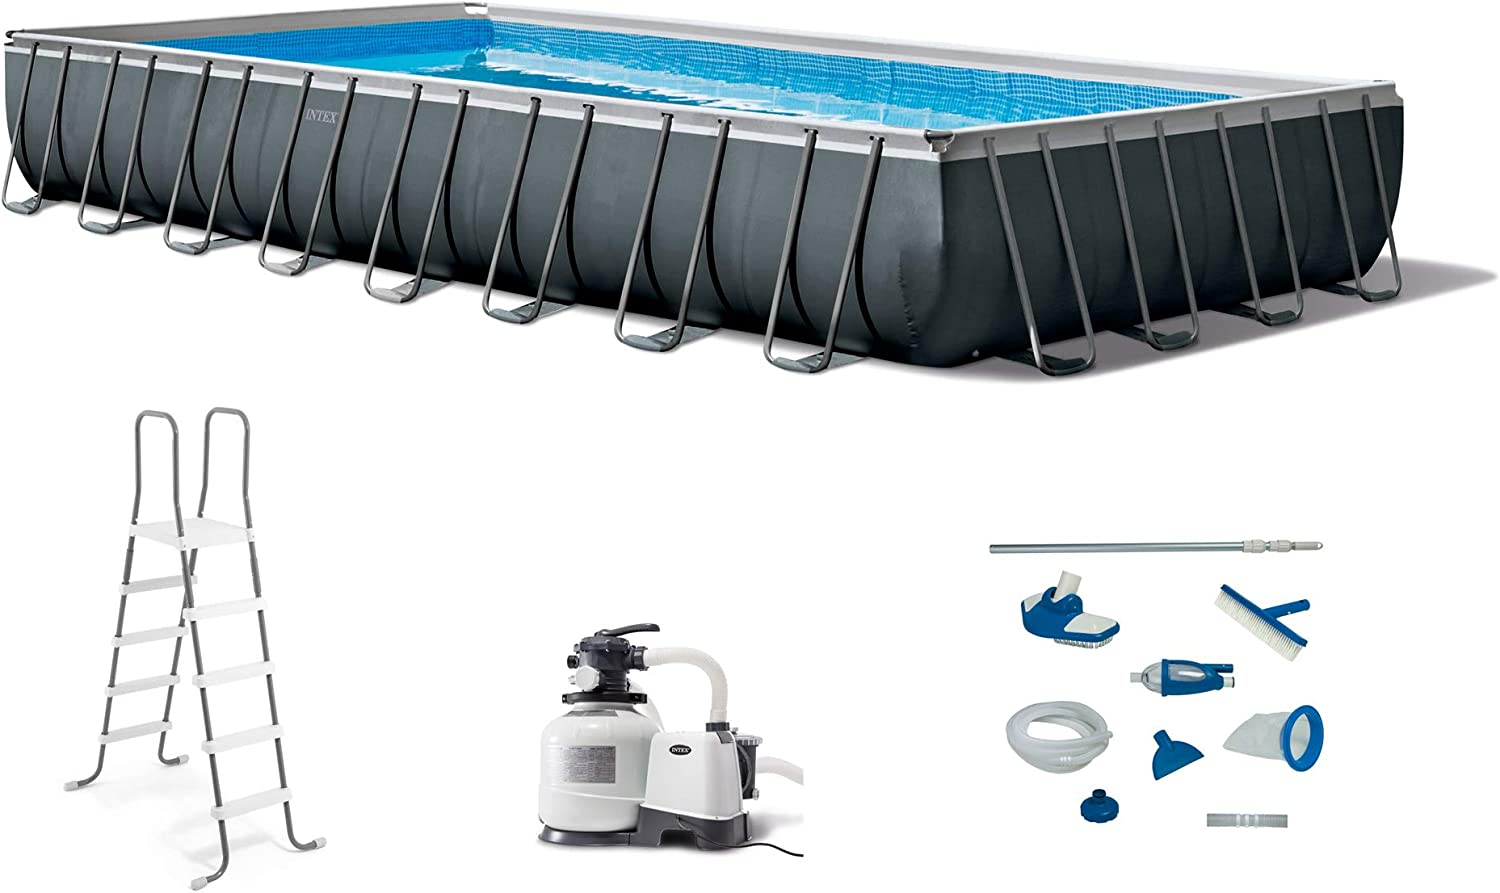 Intex Above ground swimming pool 549x274xh132cm with pump in sand and